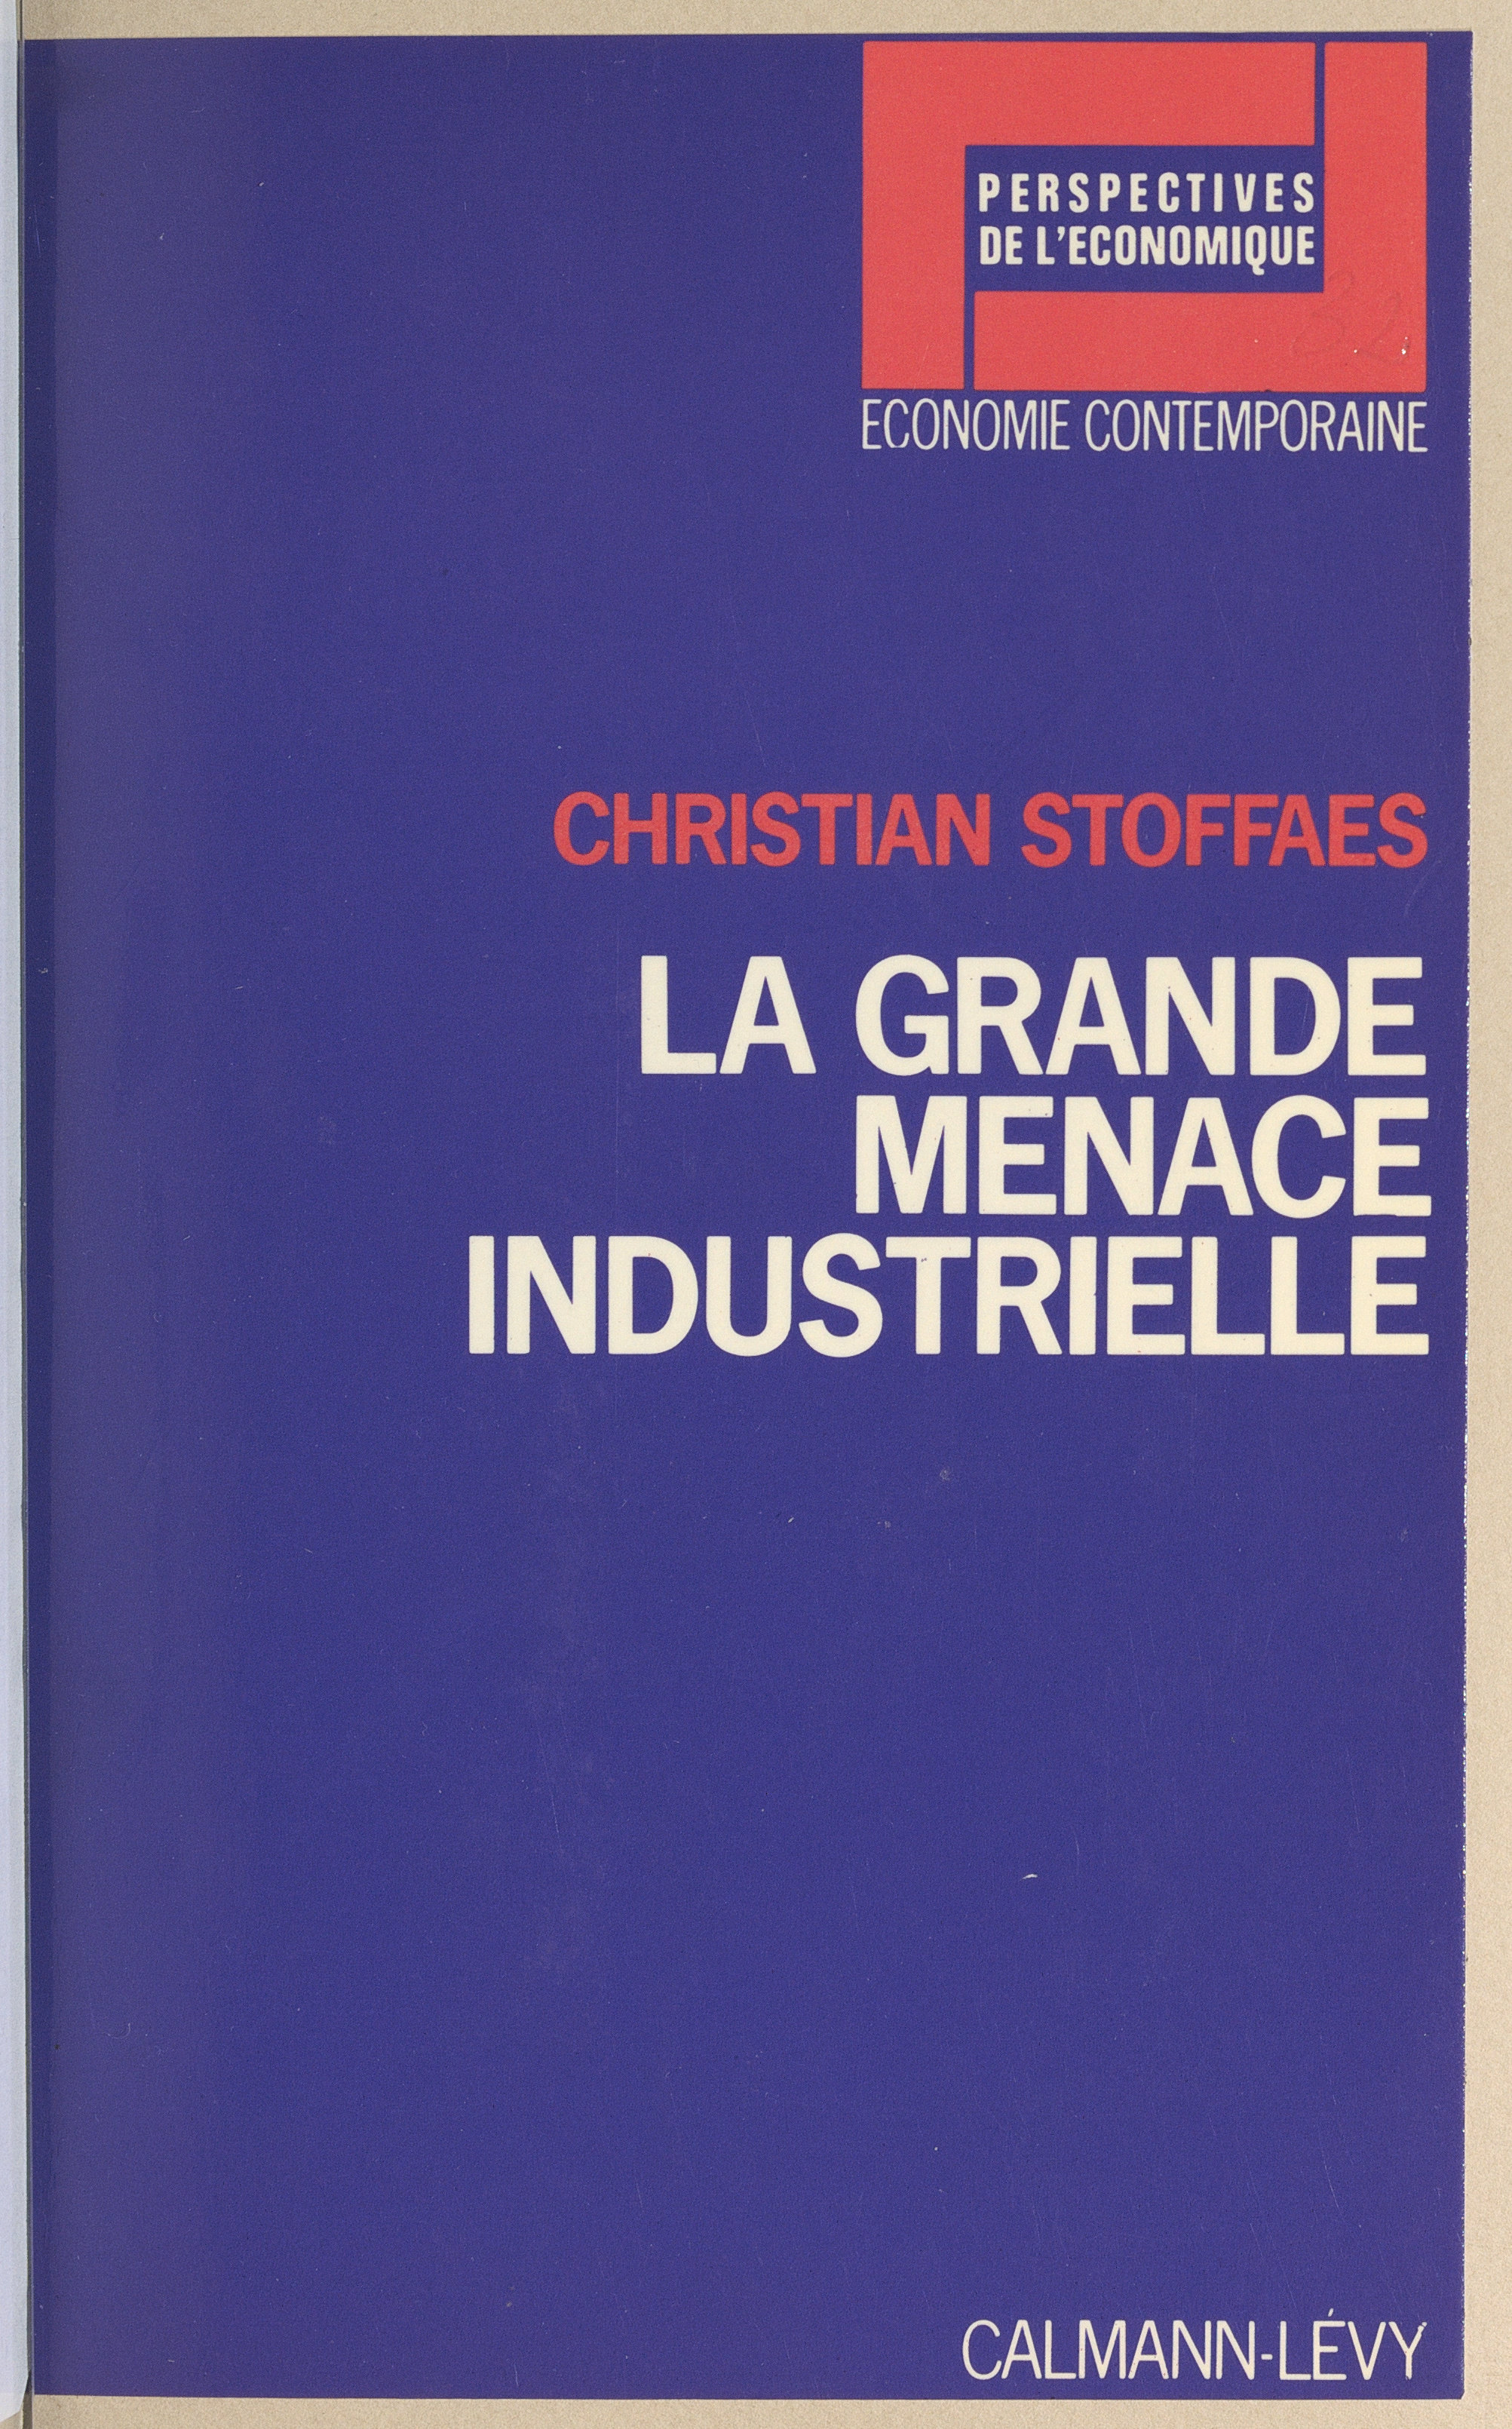 La grande menace industrielle